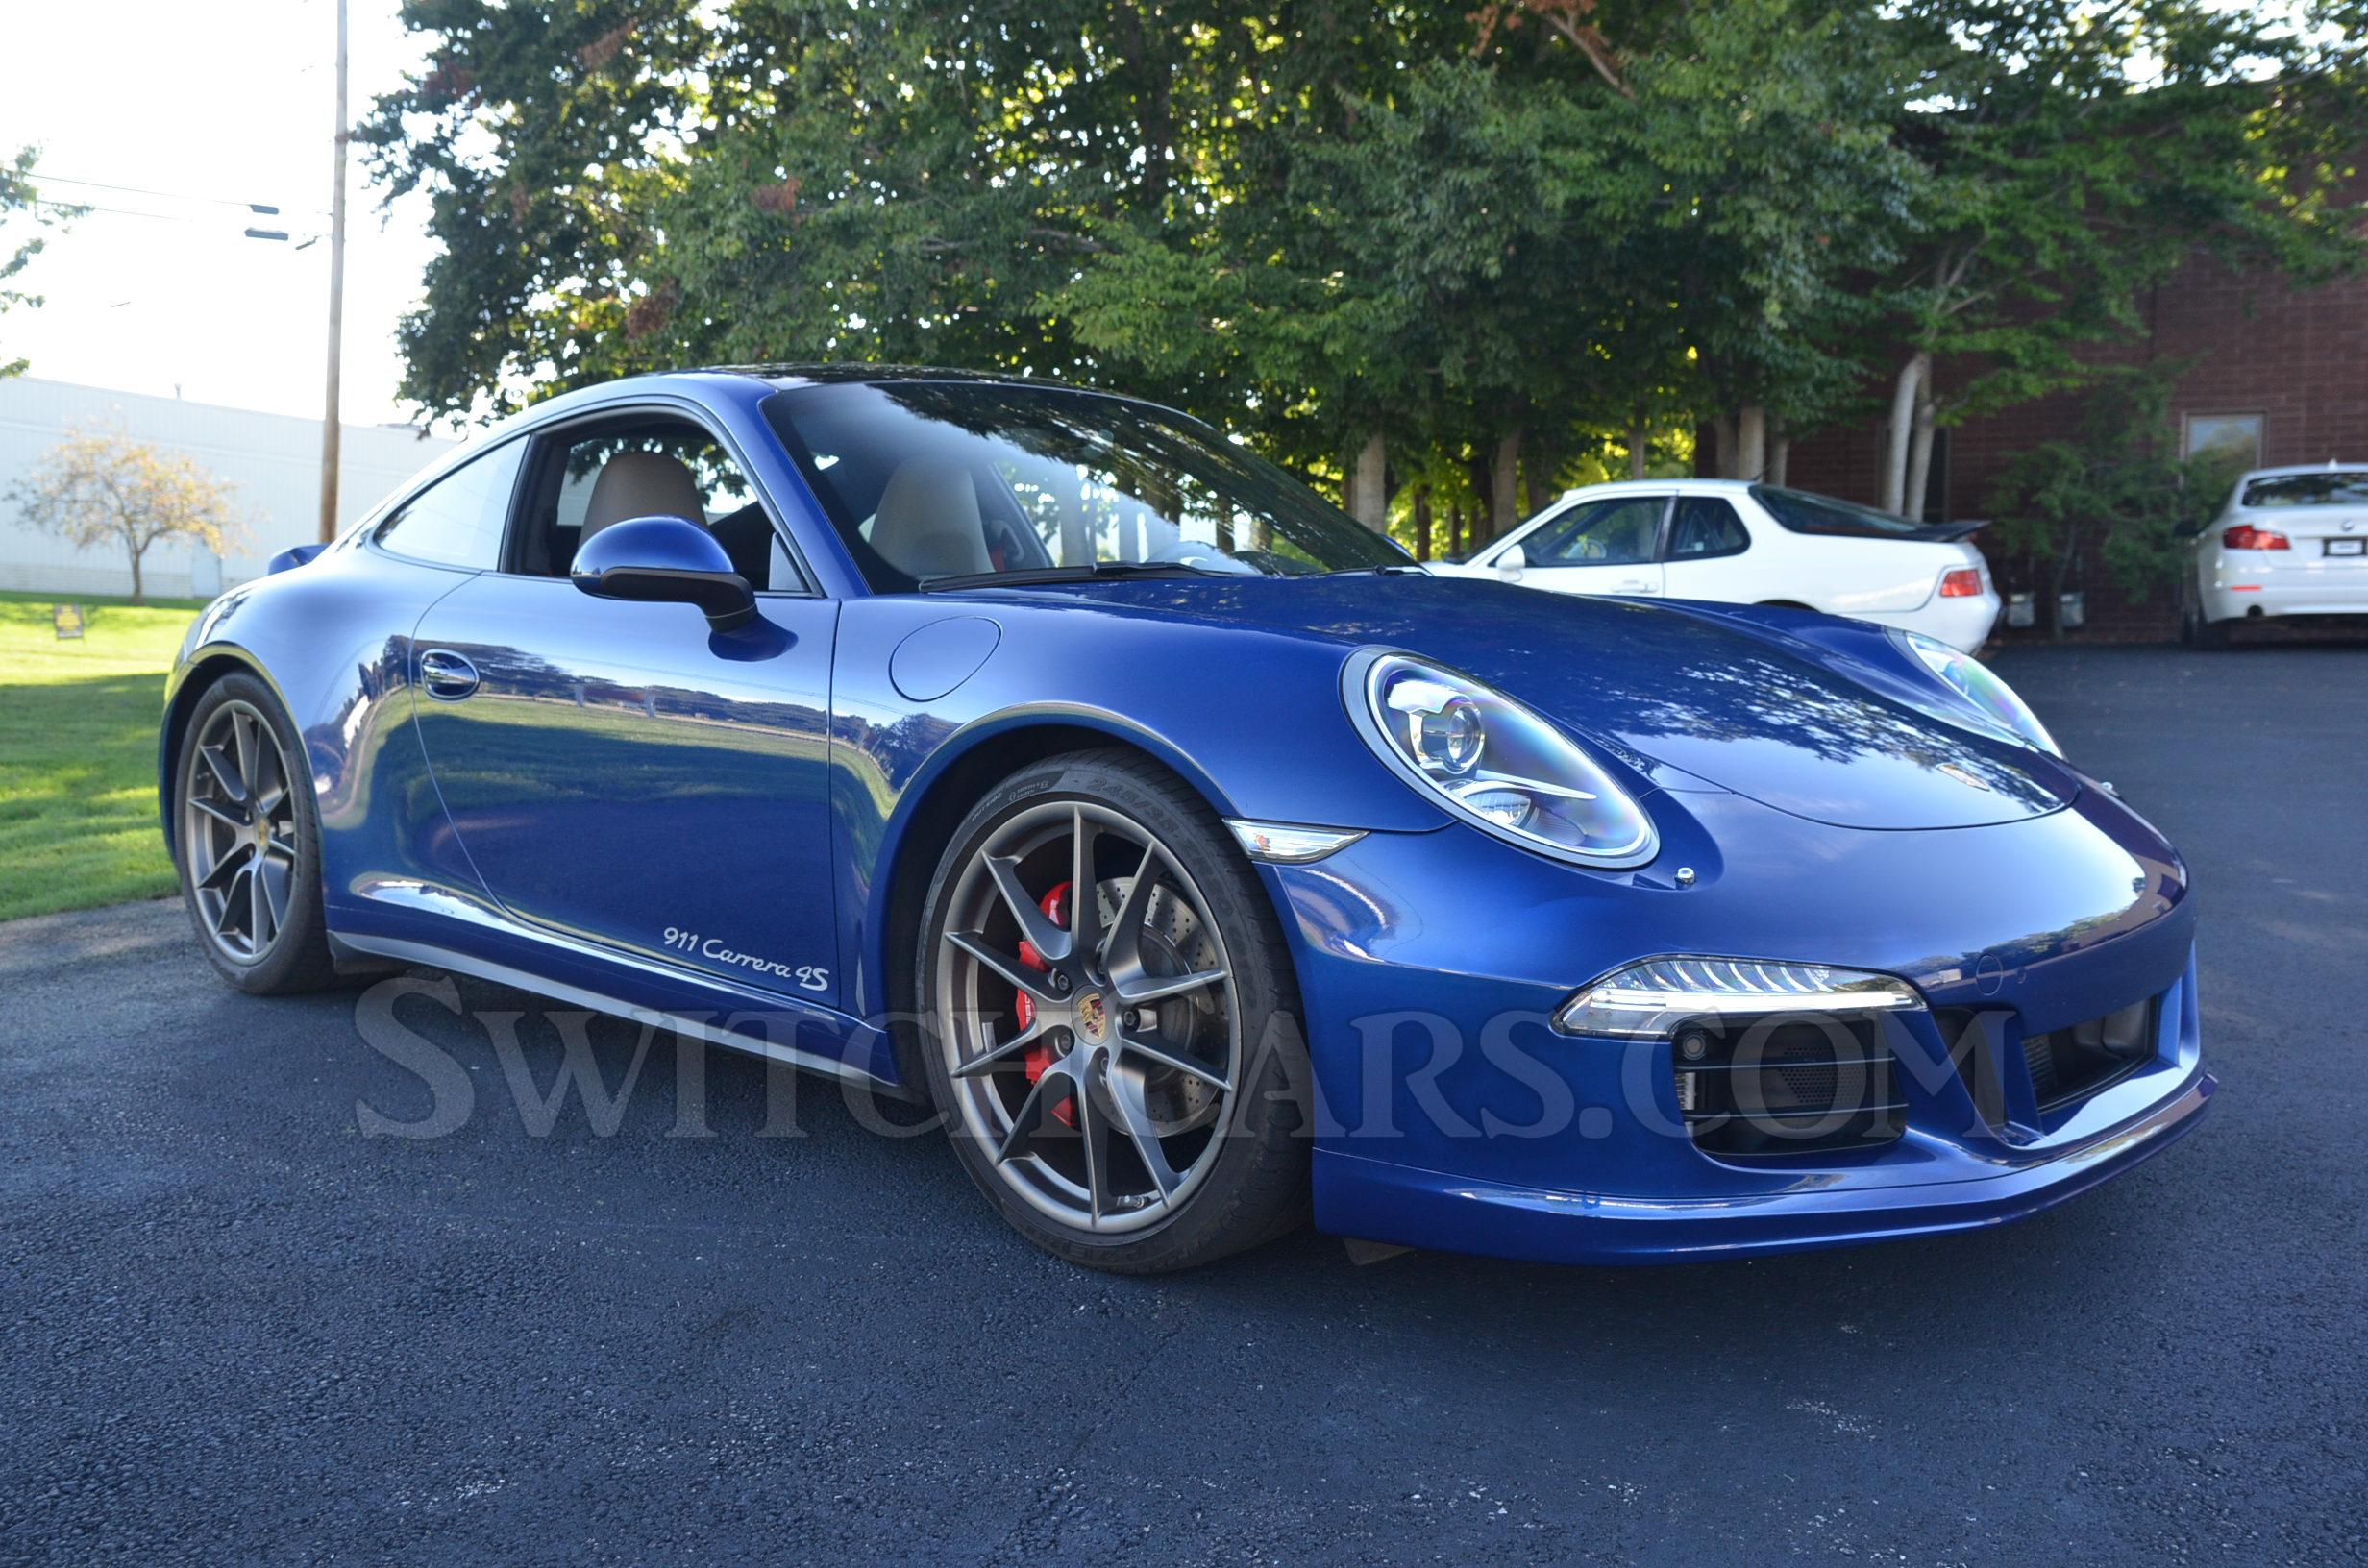 2013 Porsche 911 C4s At Switchcars Inc Sold